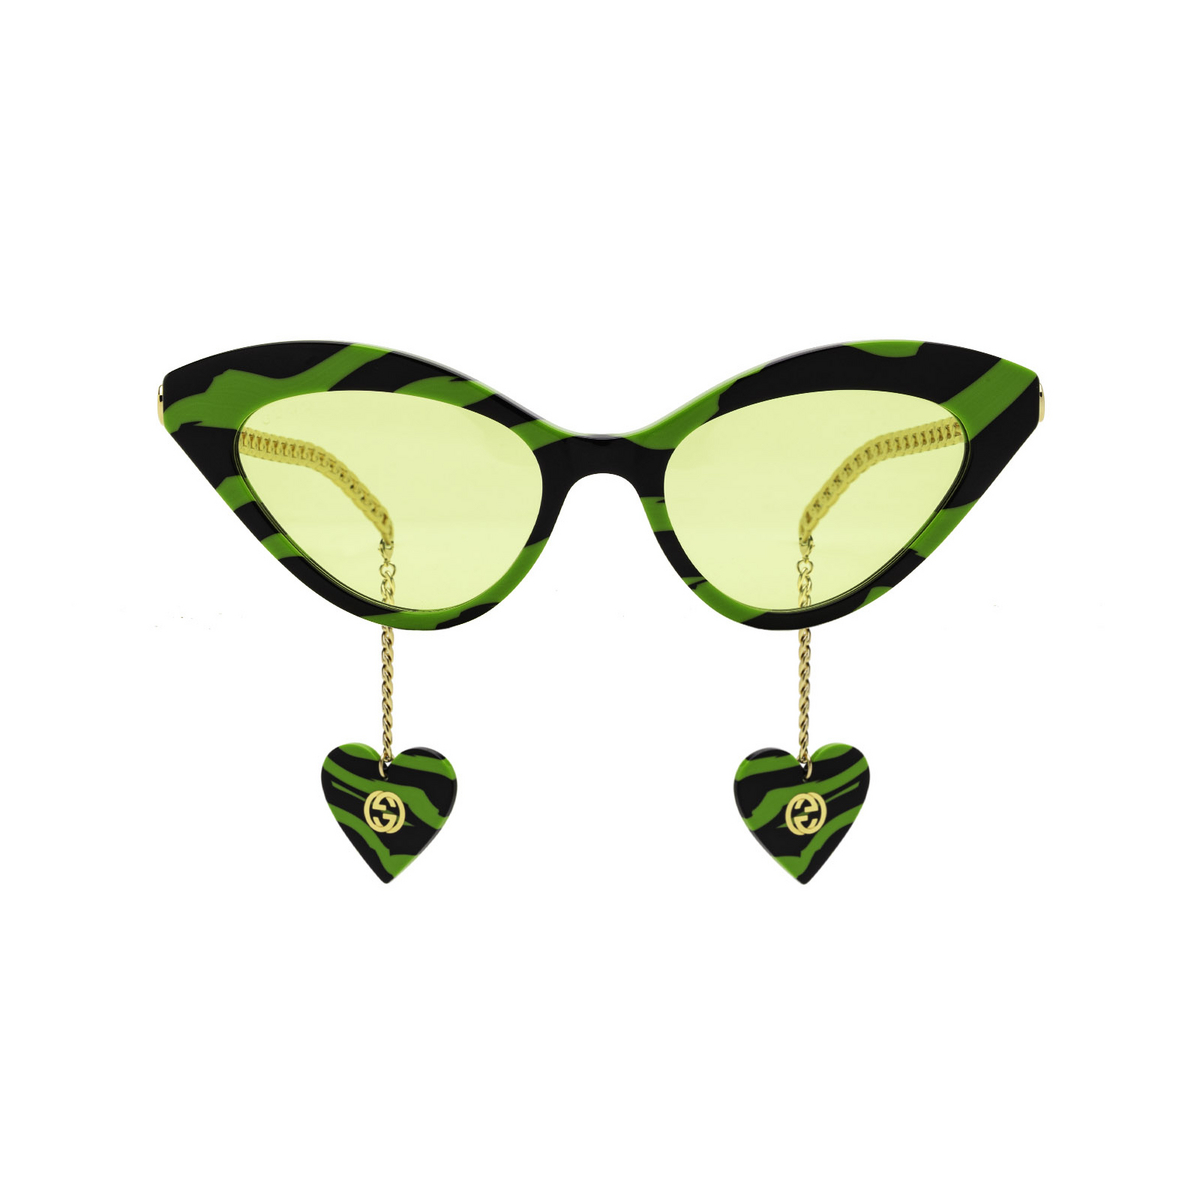 Gucci® Cat-eye Sunglasses: GG0978S color Green & Black 006 - front view.